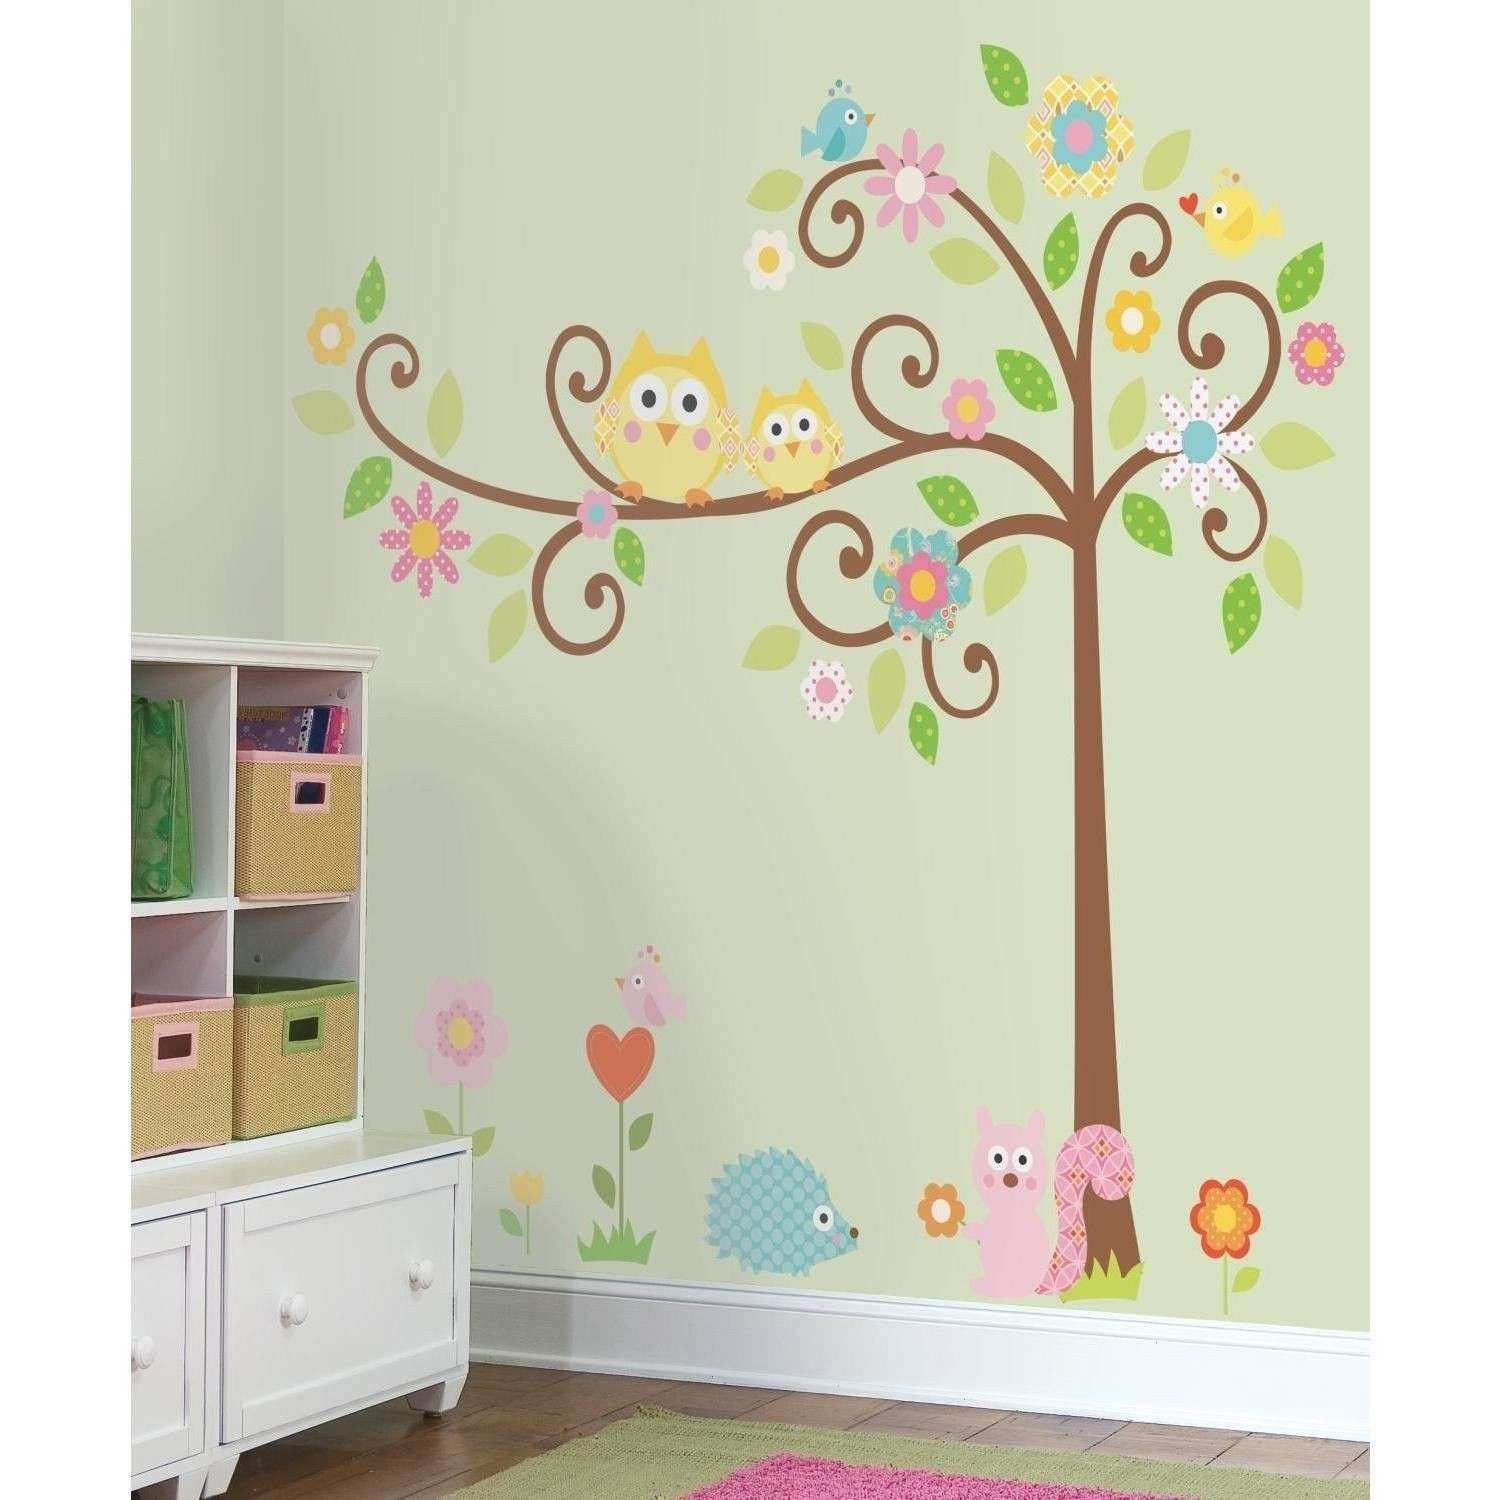 Kids Bedroom Wall Stickers Elegant Palm Tree Wall Decals Unique 1